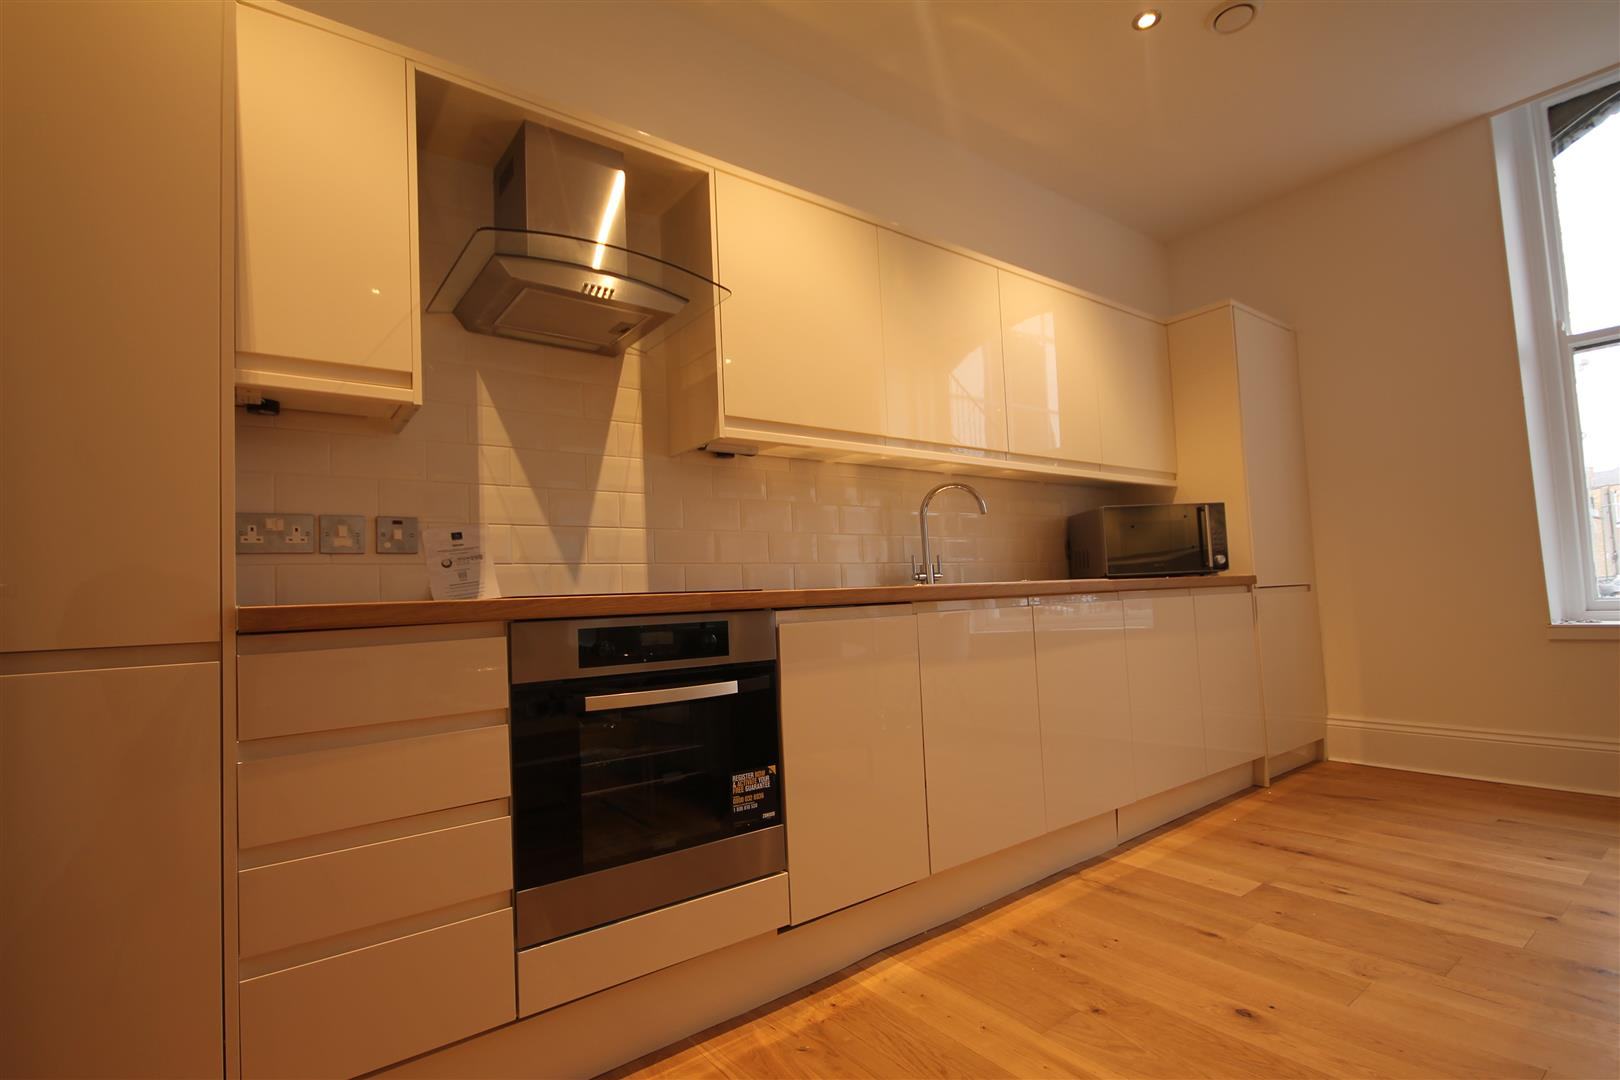 Chaucer Building Newcastle Upon Tyne, 2 Bedrooms  Apartment ,To Let